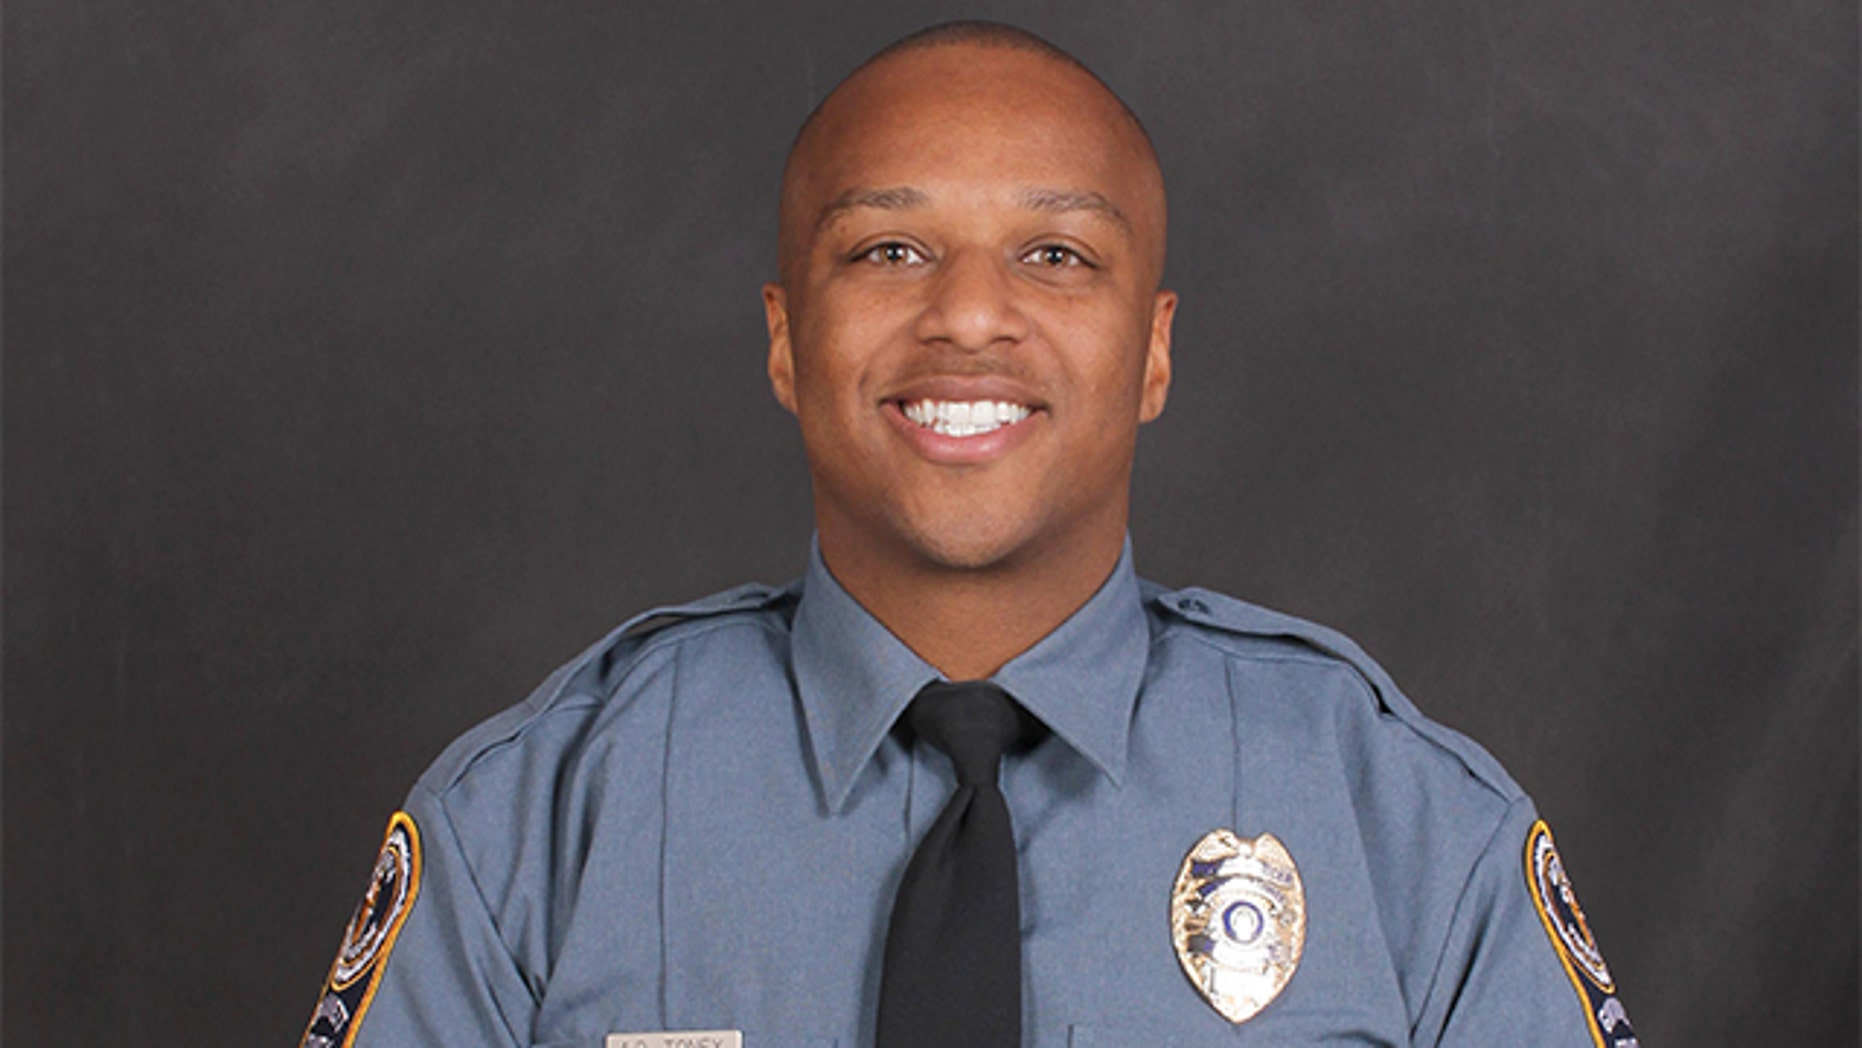 Georgia police officer killed; suspect on the loose